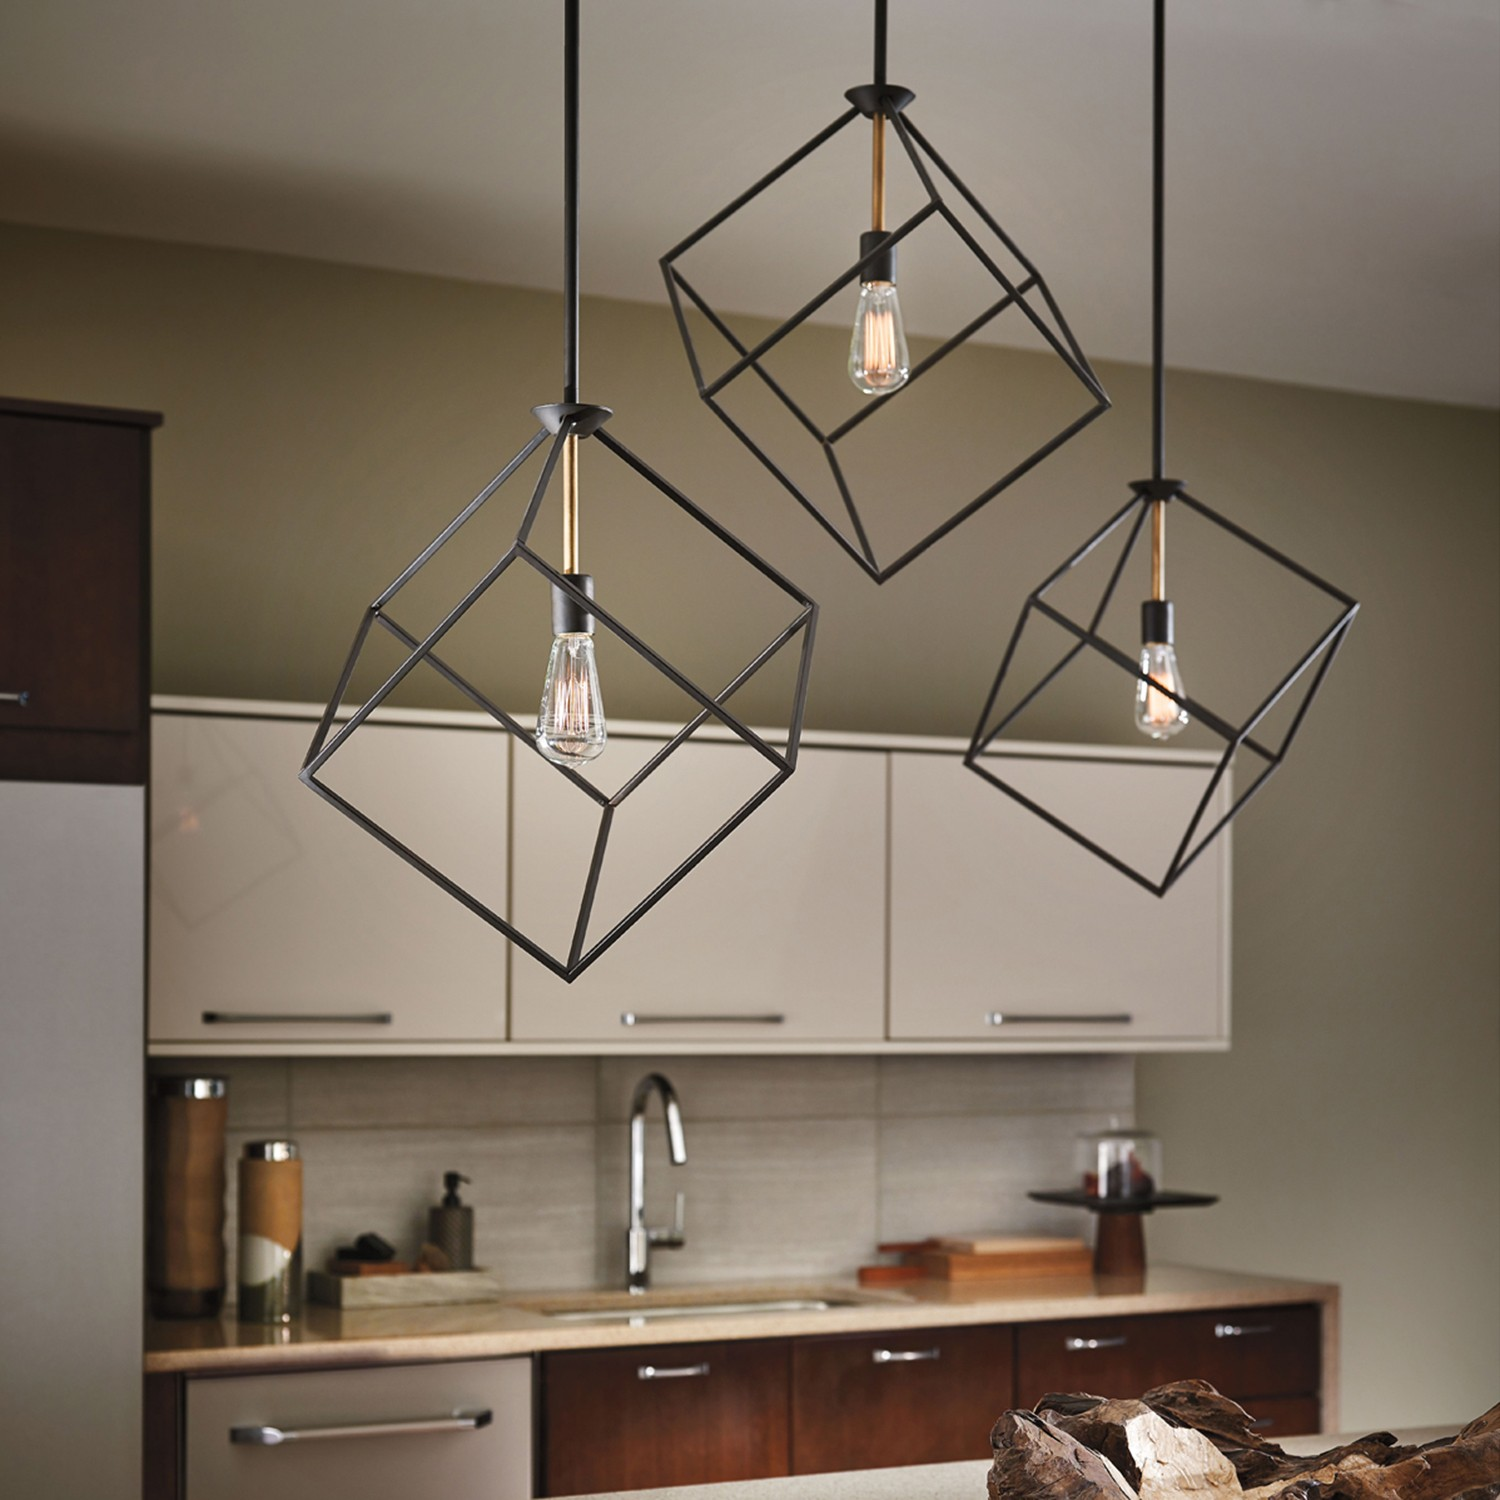 Introducing kichler modern lighting for Contemporary kitchen pendant lighting